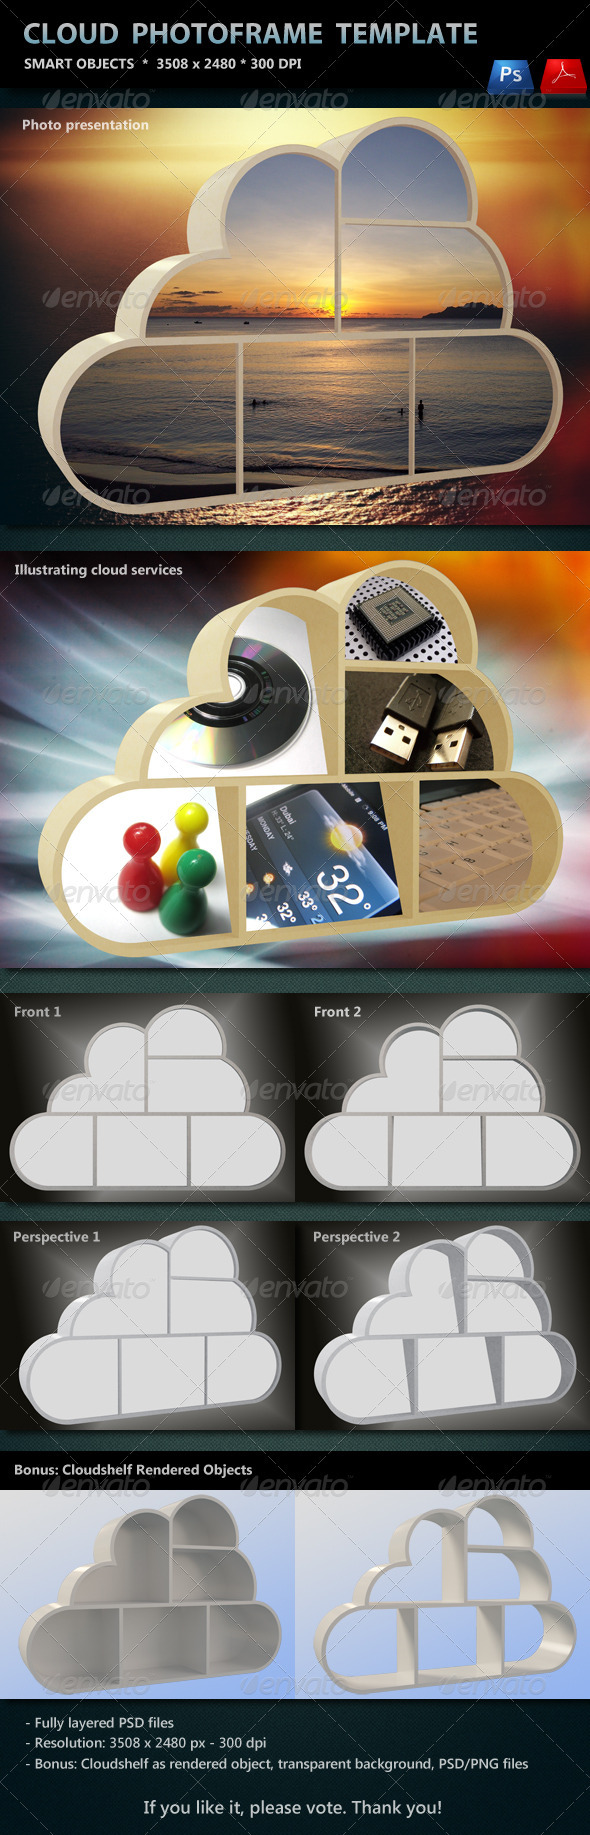 Cloud Photo Frame Template - Photo Templates Graphics